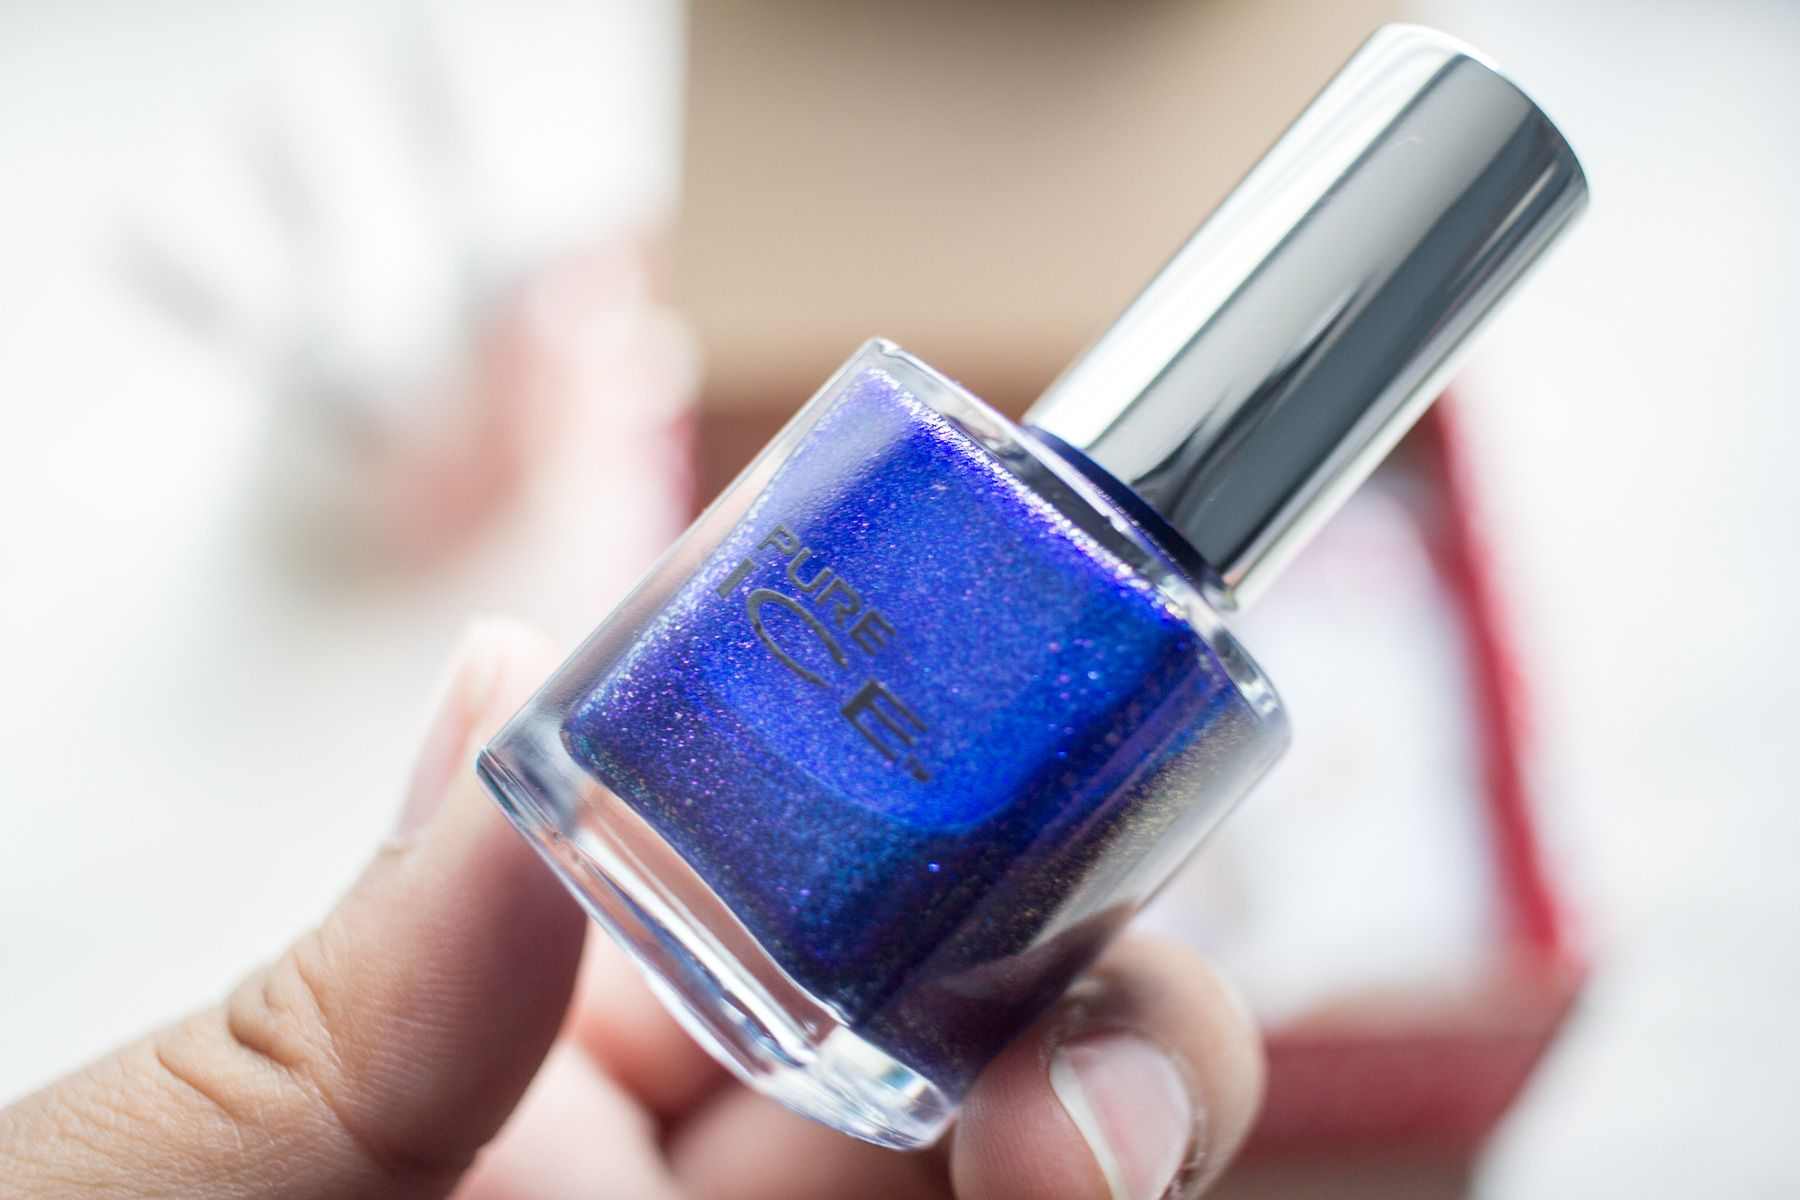 Pure Ice Nail Polish - Deja Vu. Only $1.97 available only at Walmart ...